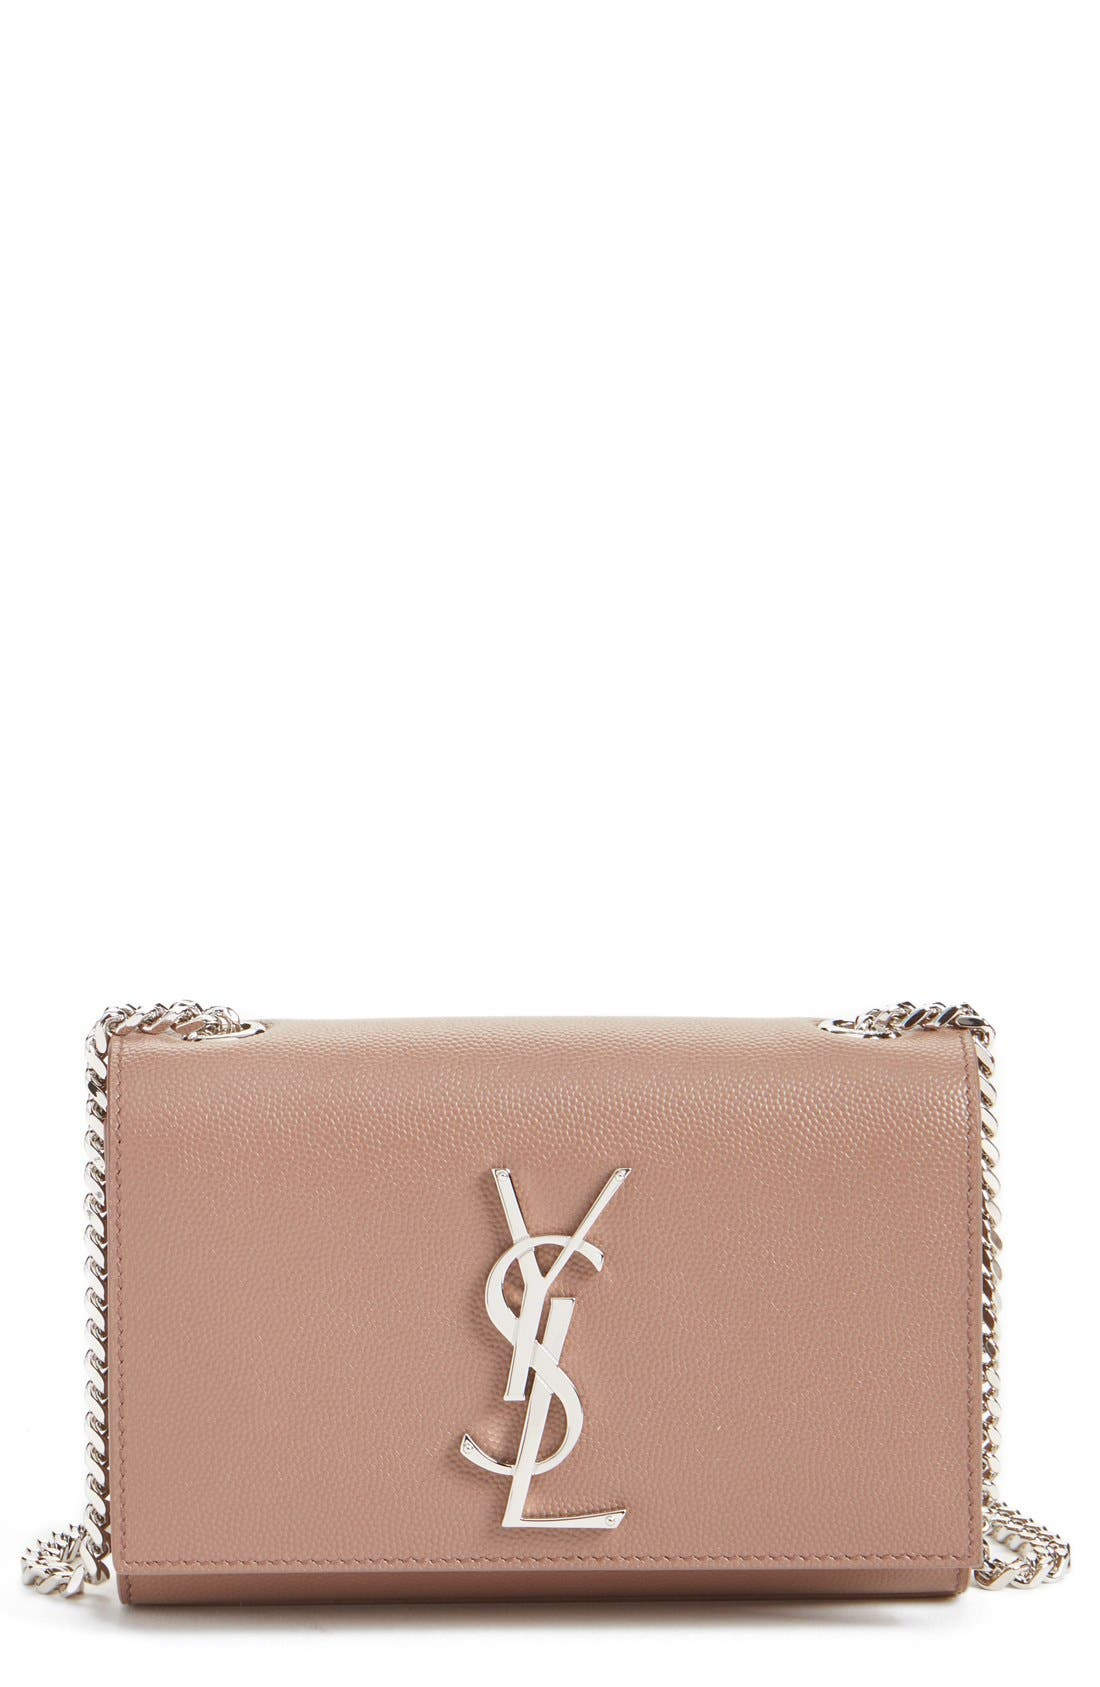 Alternate Image 1 Selected - Saint Laurent 'Small Monogram' Leather Crossbody Bag